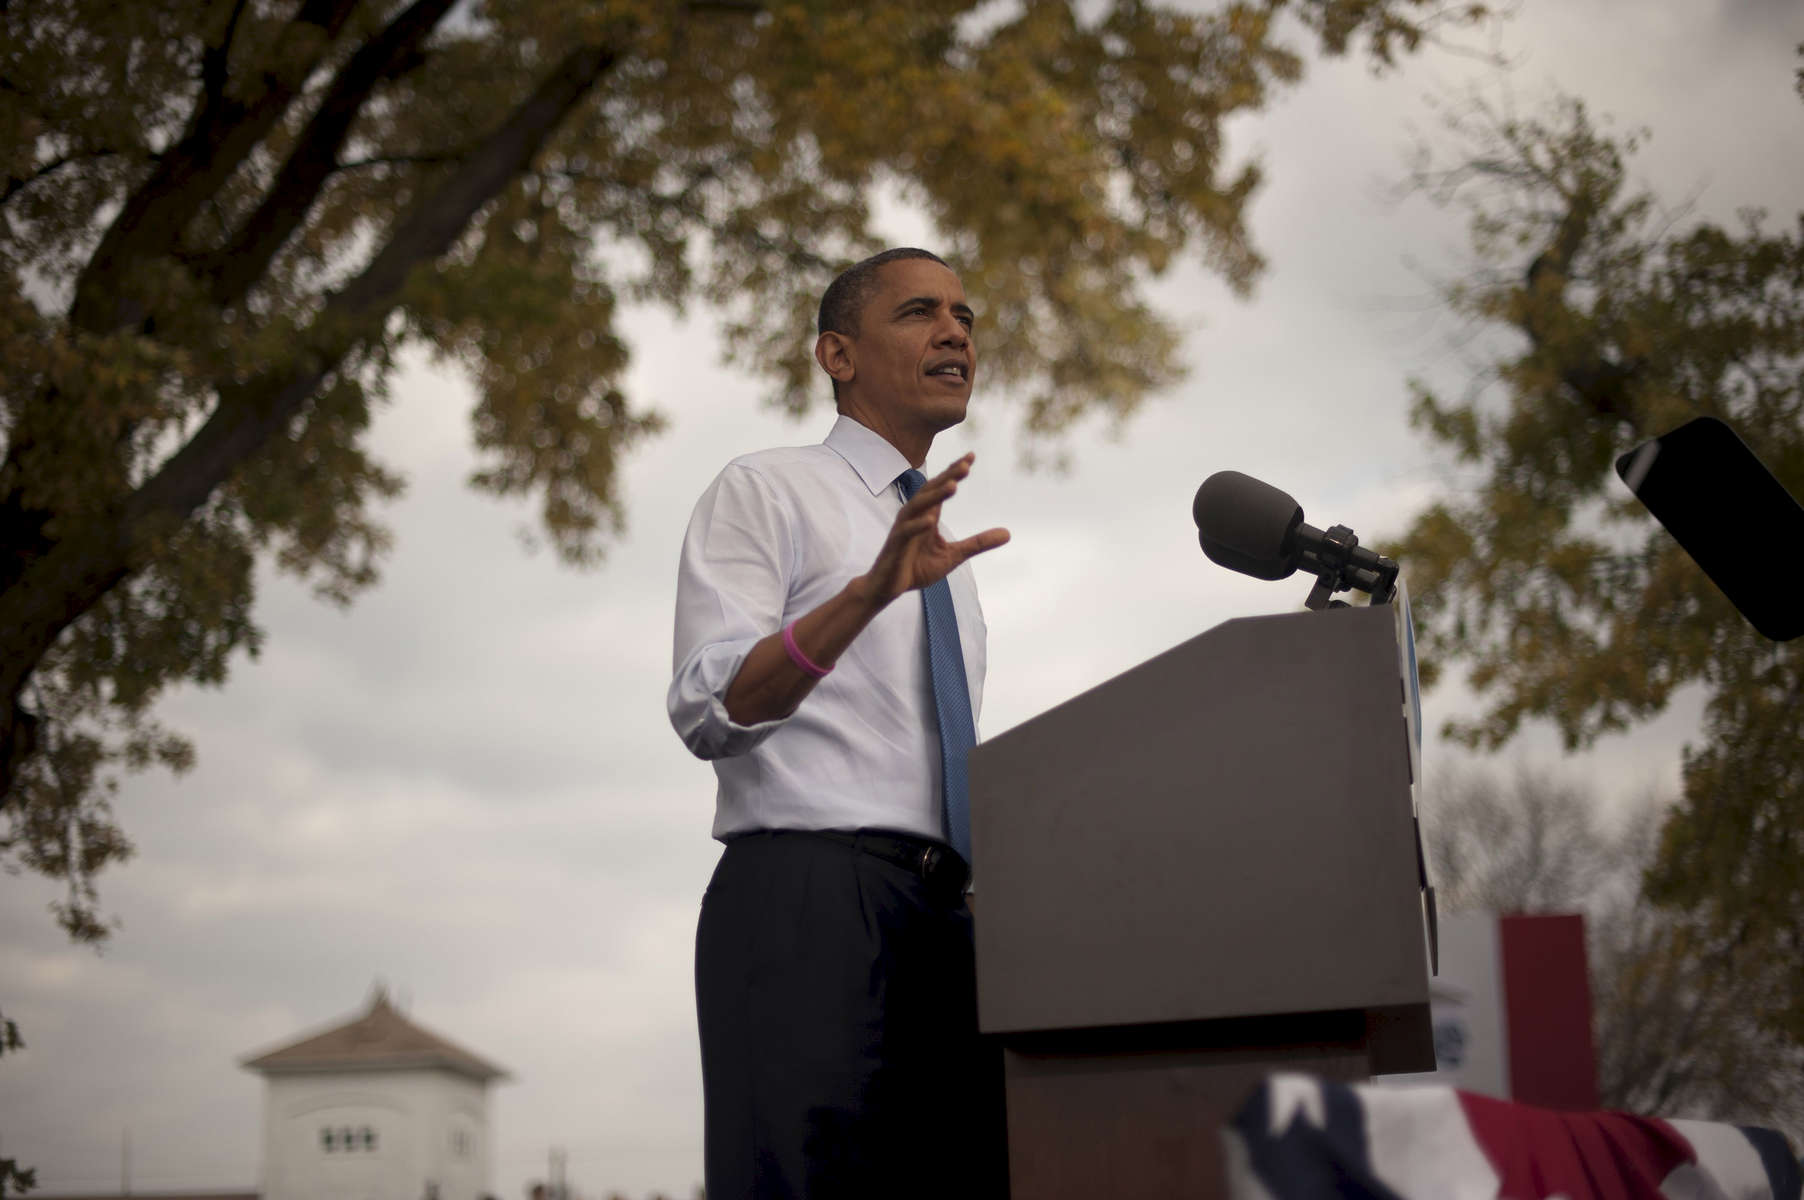 October 24, 2012 - Davenport, IA:  President Barack Obama speaks at a campaign event in Davenport, IA,  his first stop on a whirlwind 48 hours of straight campaigning. (Scout Tufankjian for Obama for America/Polaris)